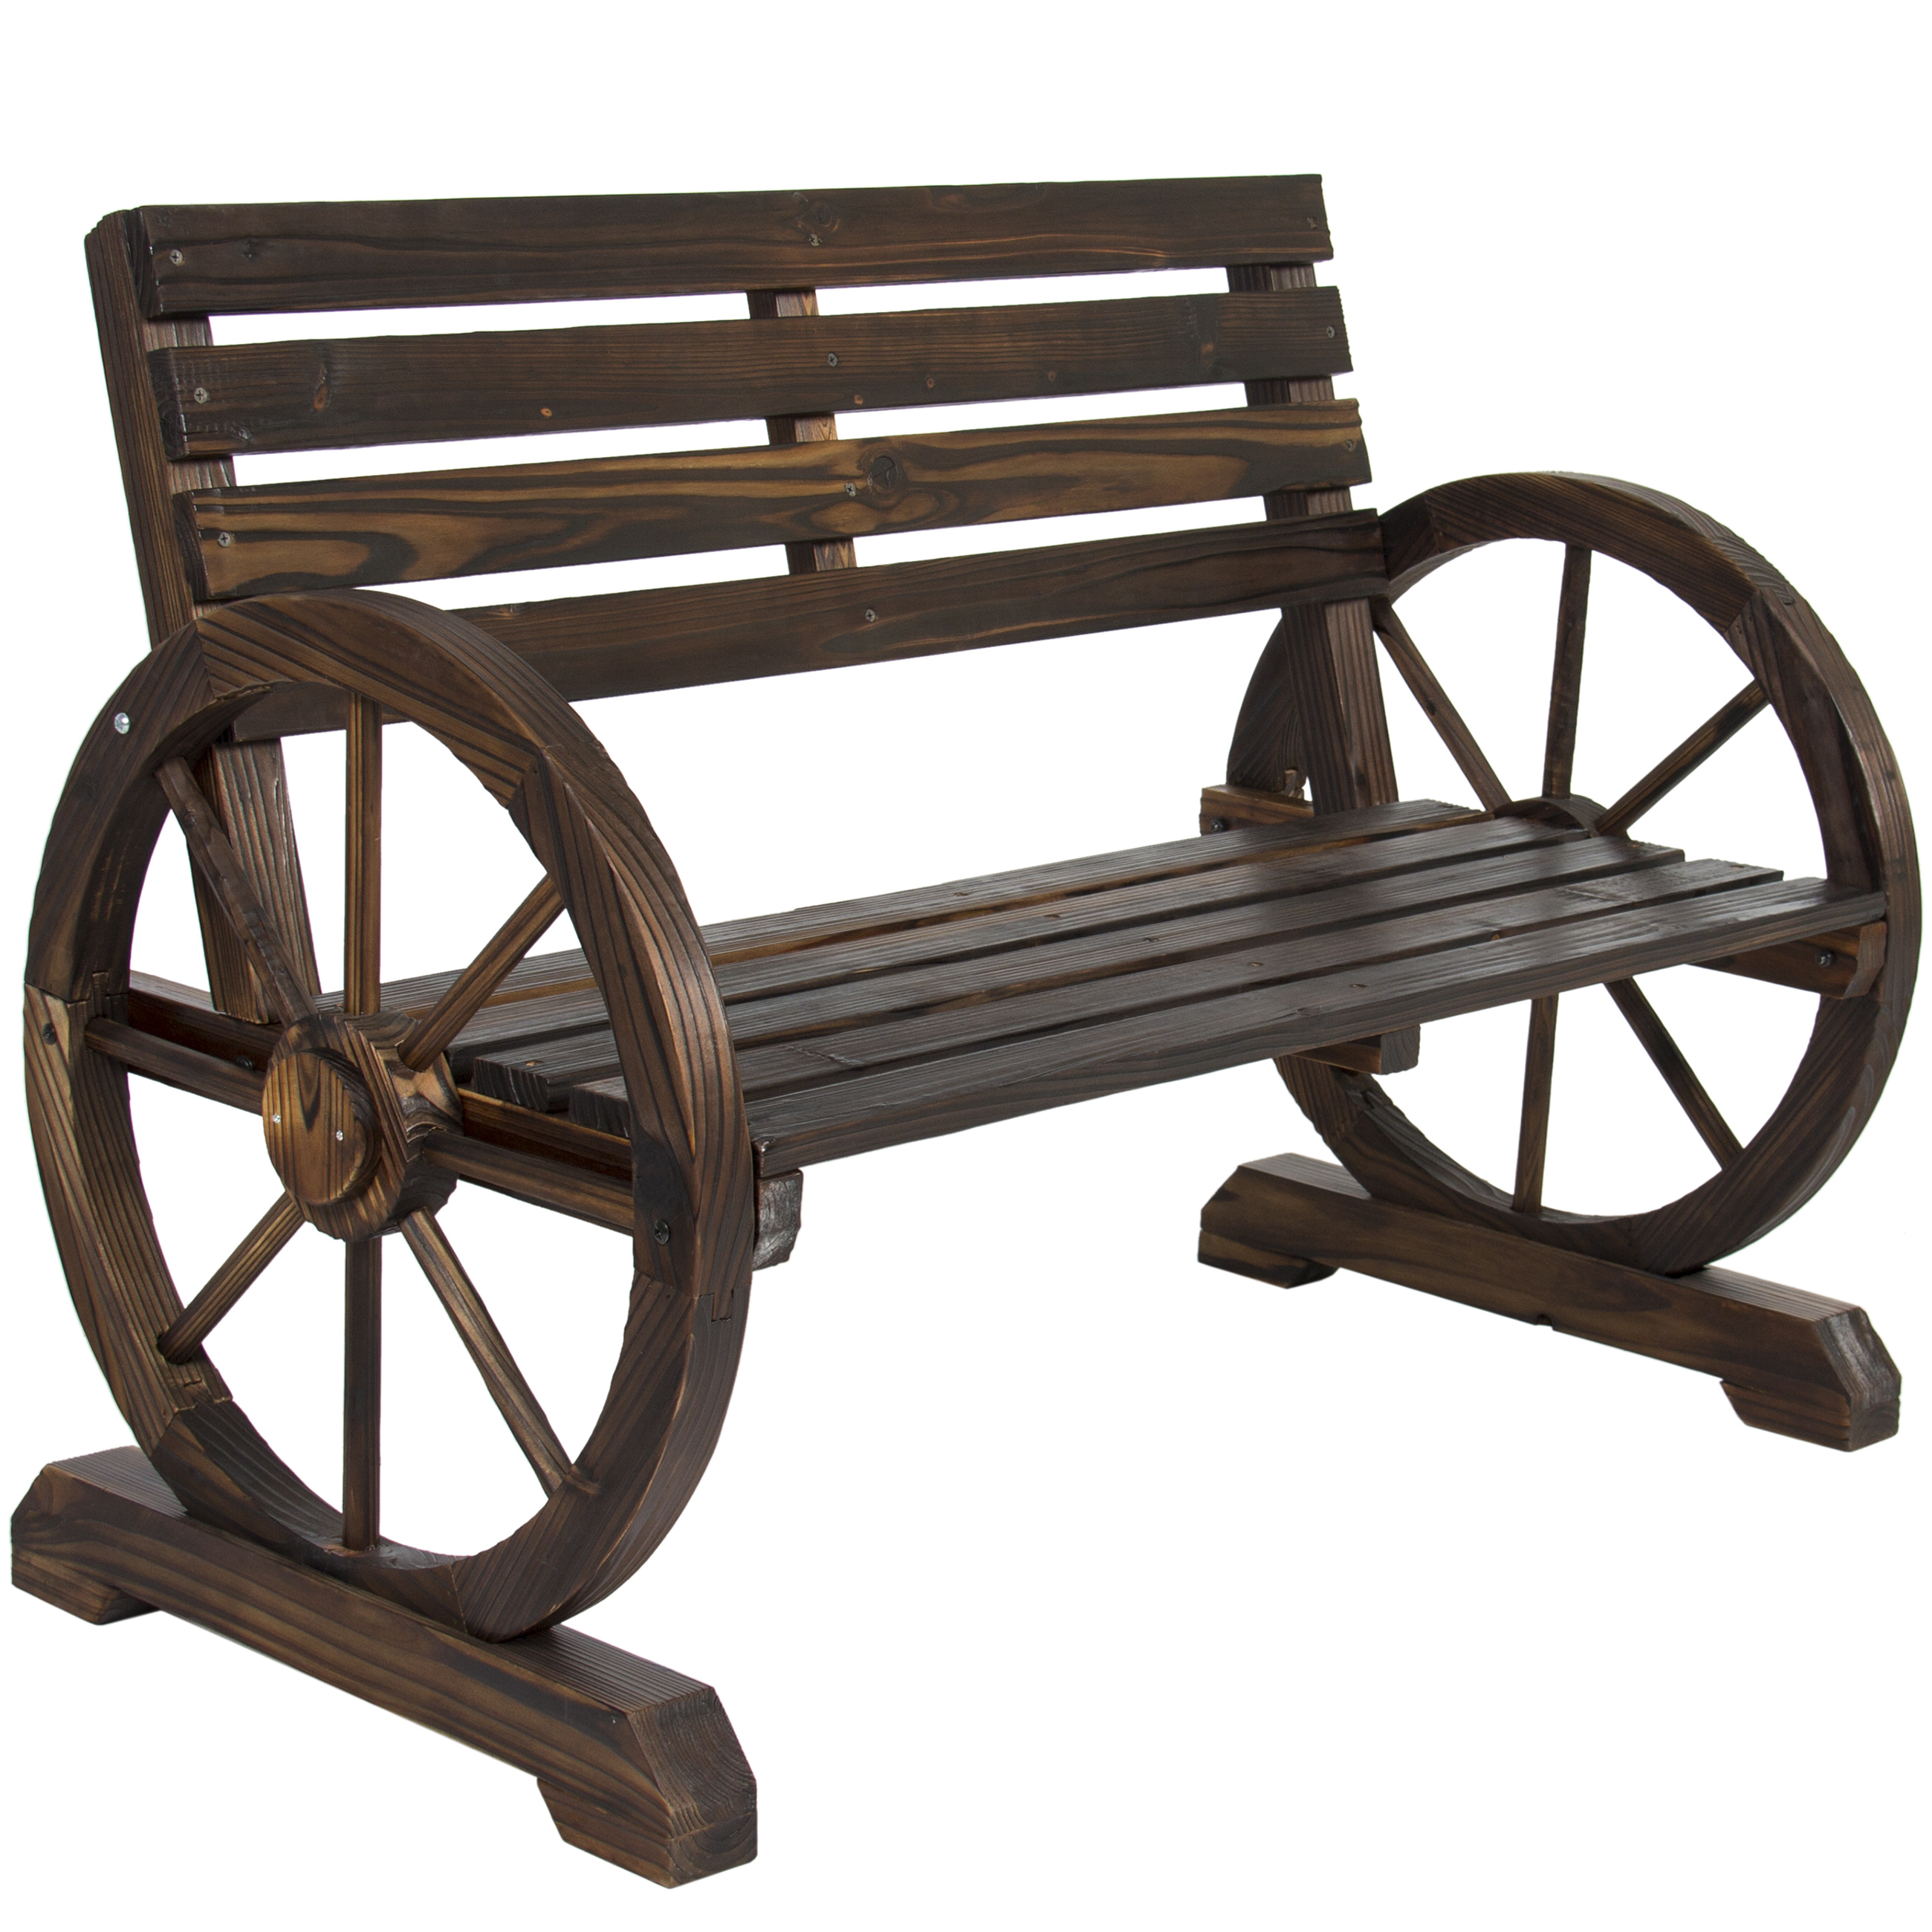 create rustic charm table garden western wheel htm will hand setting outdoor your bench crafted country in wagon